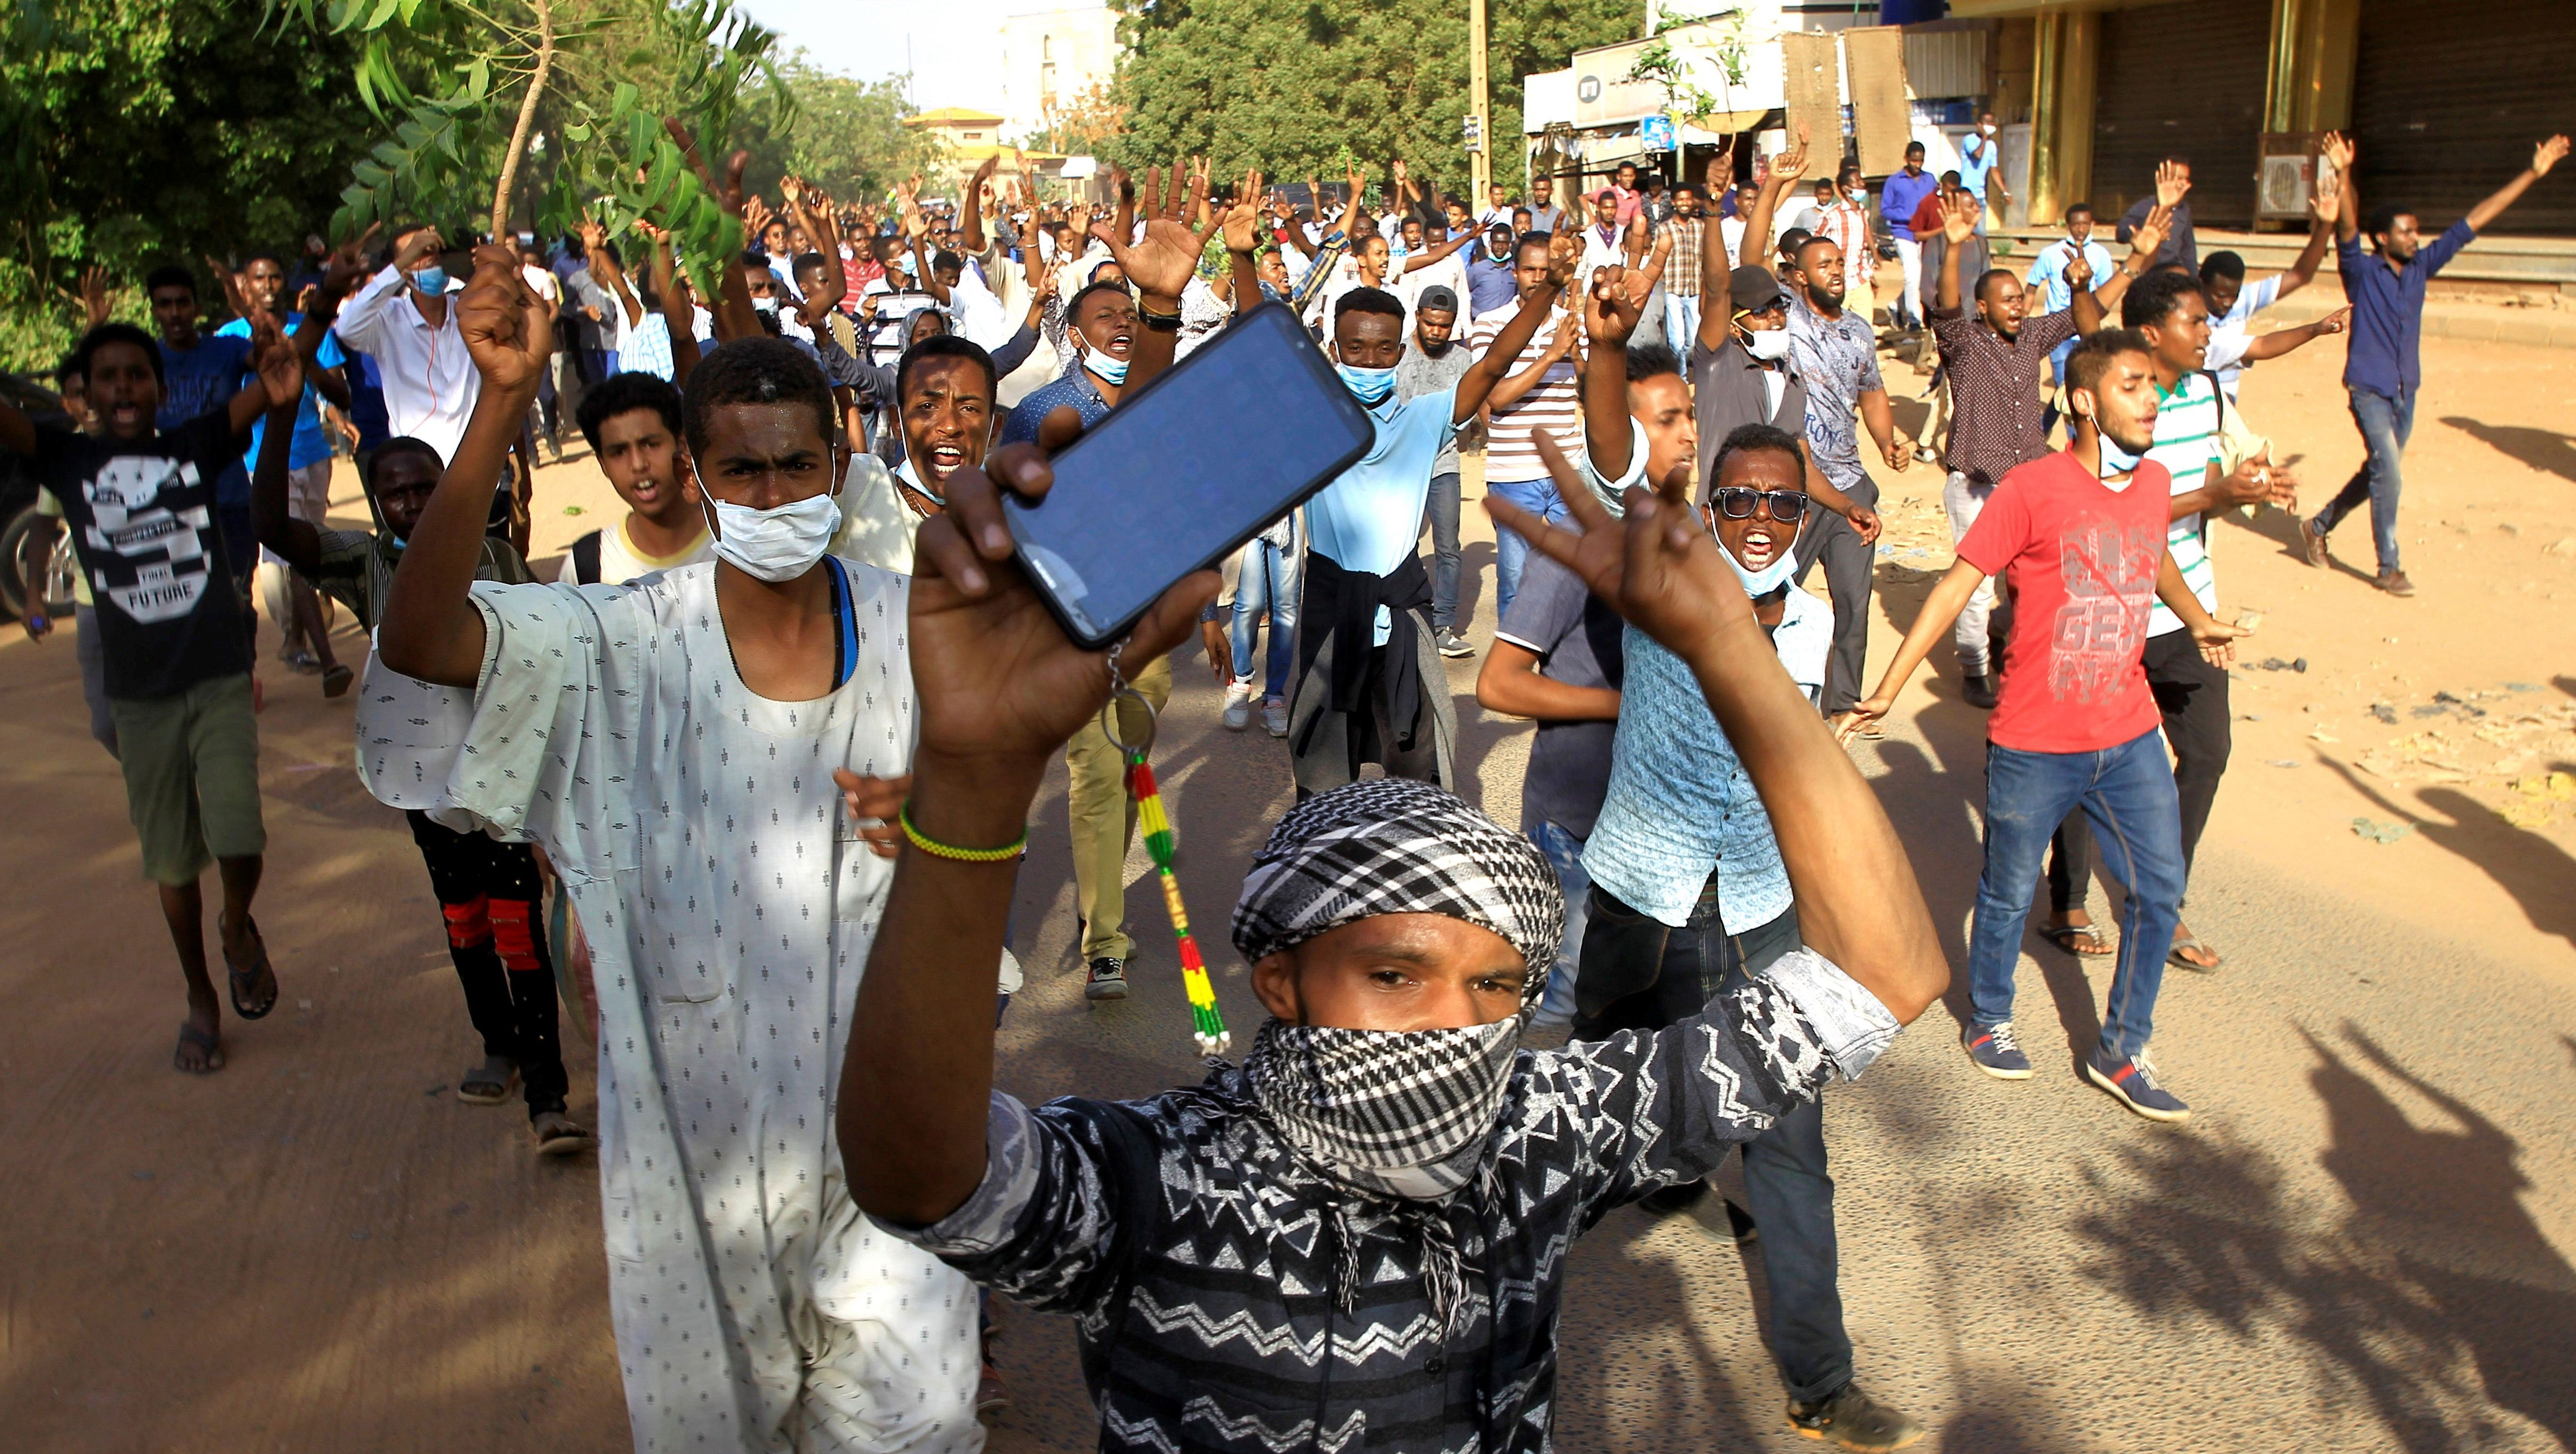 Sudanese demonstrators chant slogans as they march along the street during anti-government protests in Khartoum, Sudan December 25, 2018.